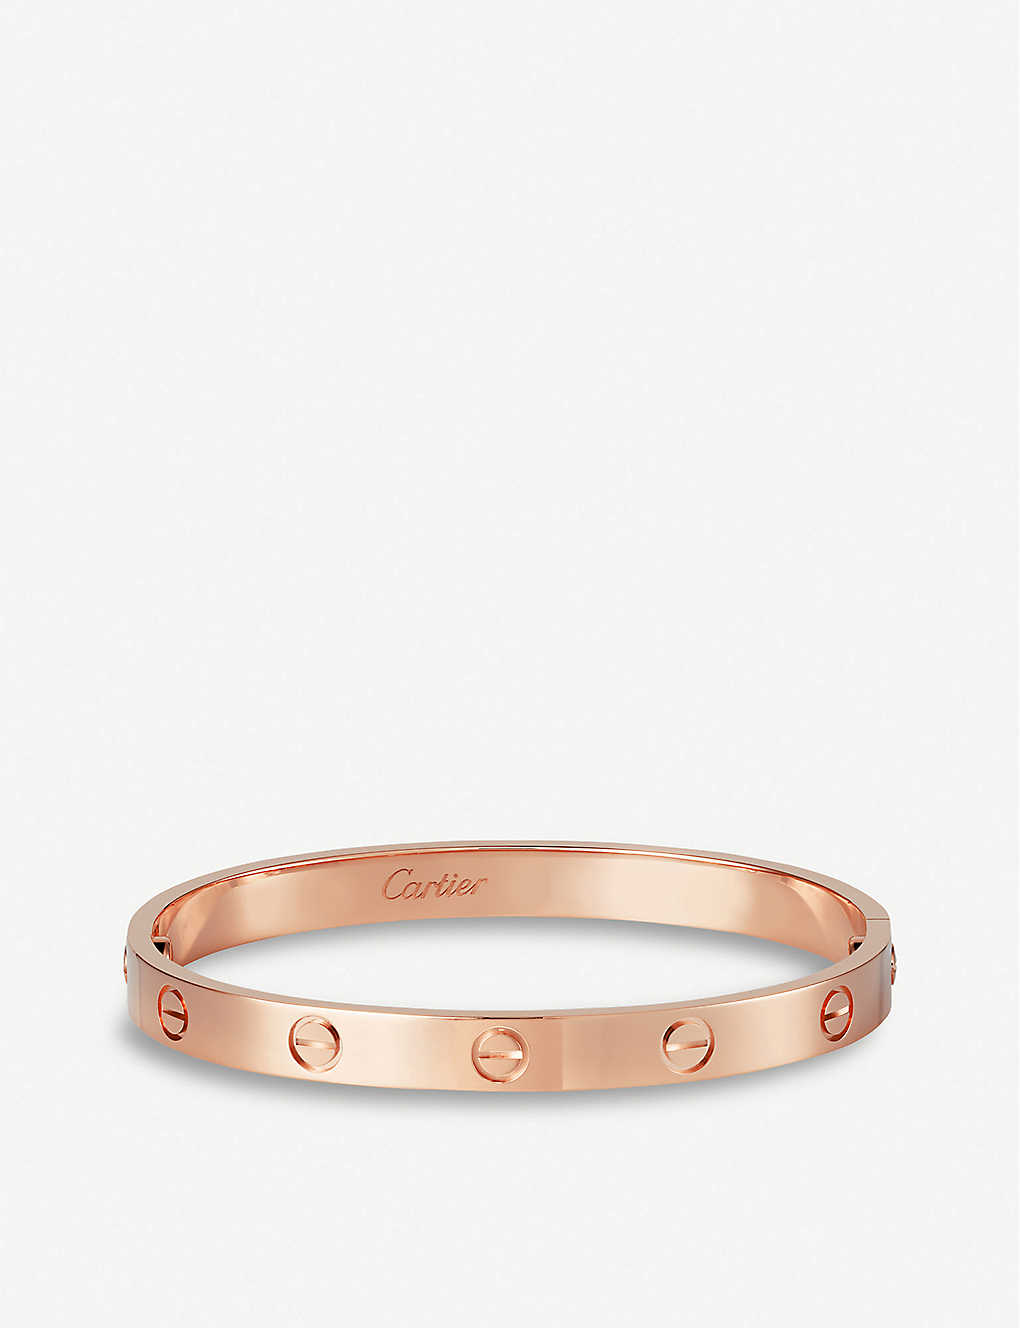 CARTIER: LOVE 18ct pink-gold bracelet